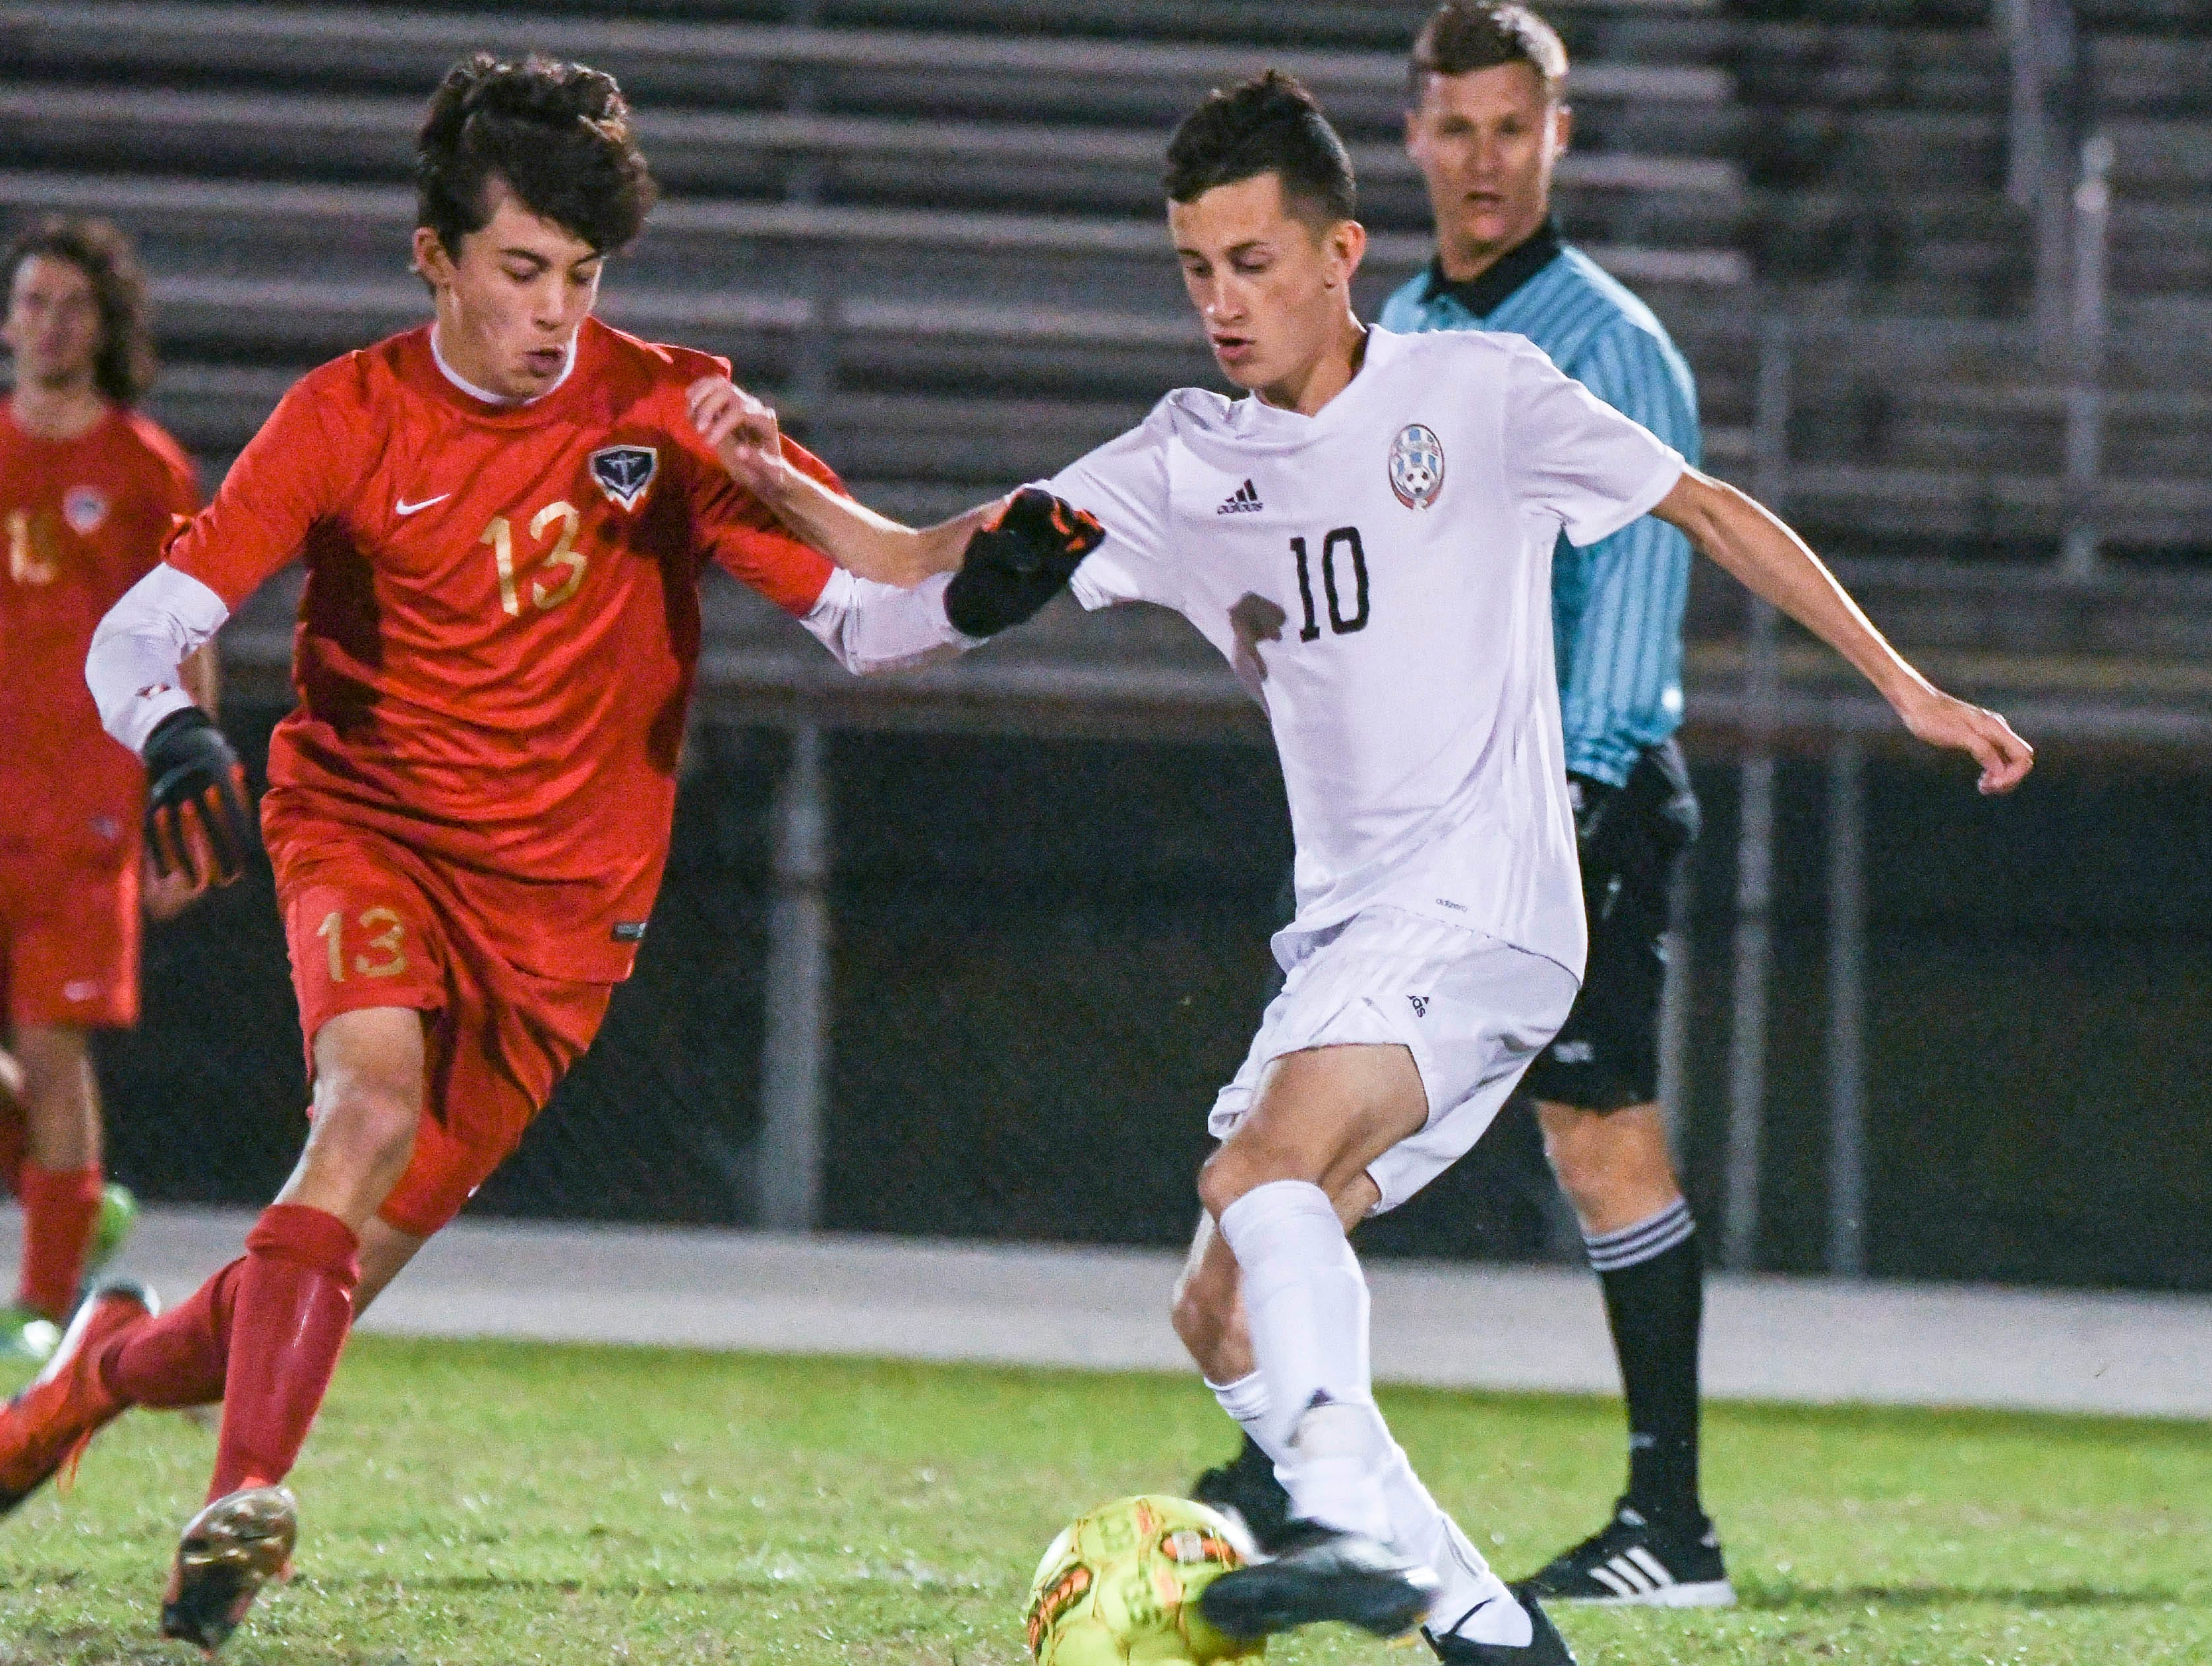 Jaxon Supernaw of Eau Gallie battles with Beto Garza of Rockledge during Thursday's game in Melbourne.